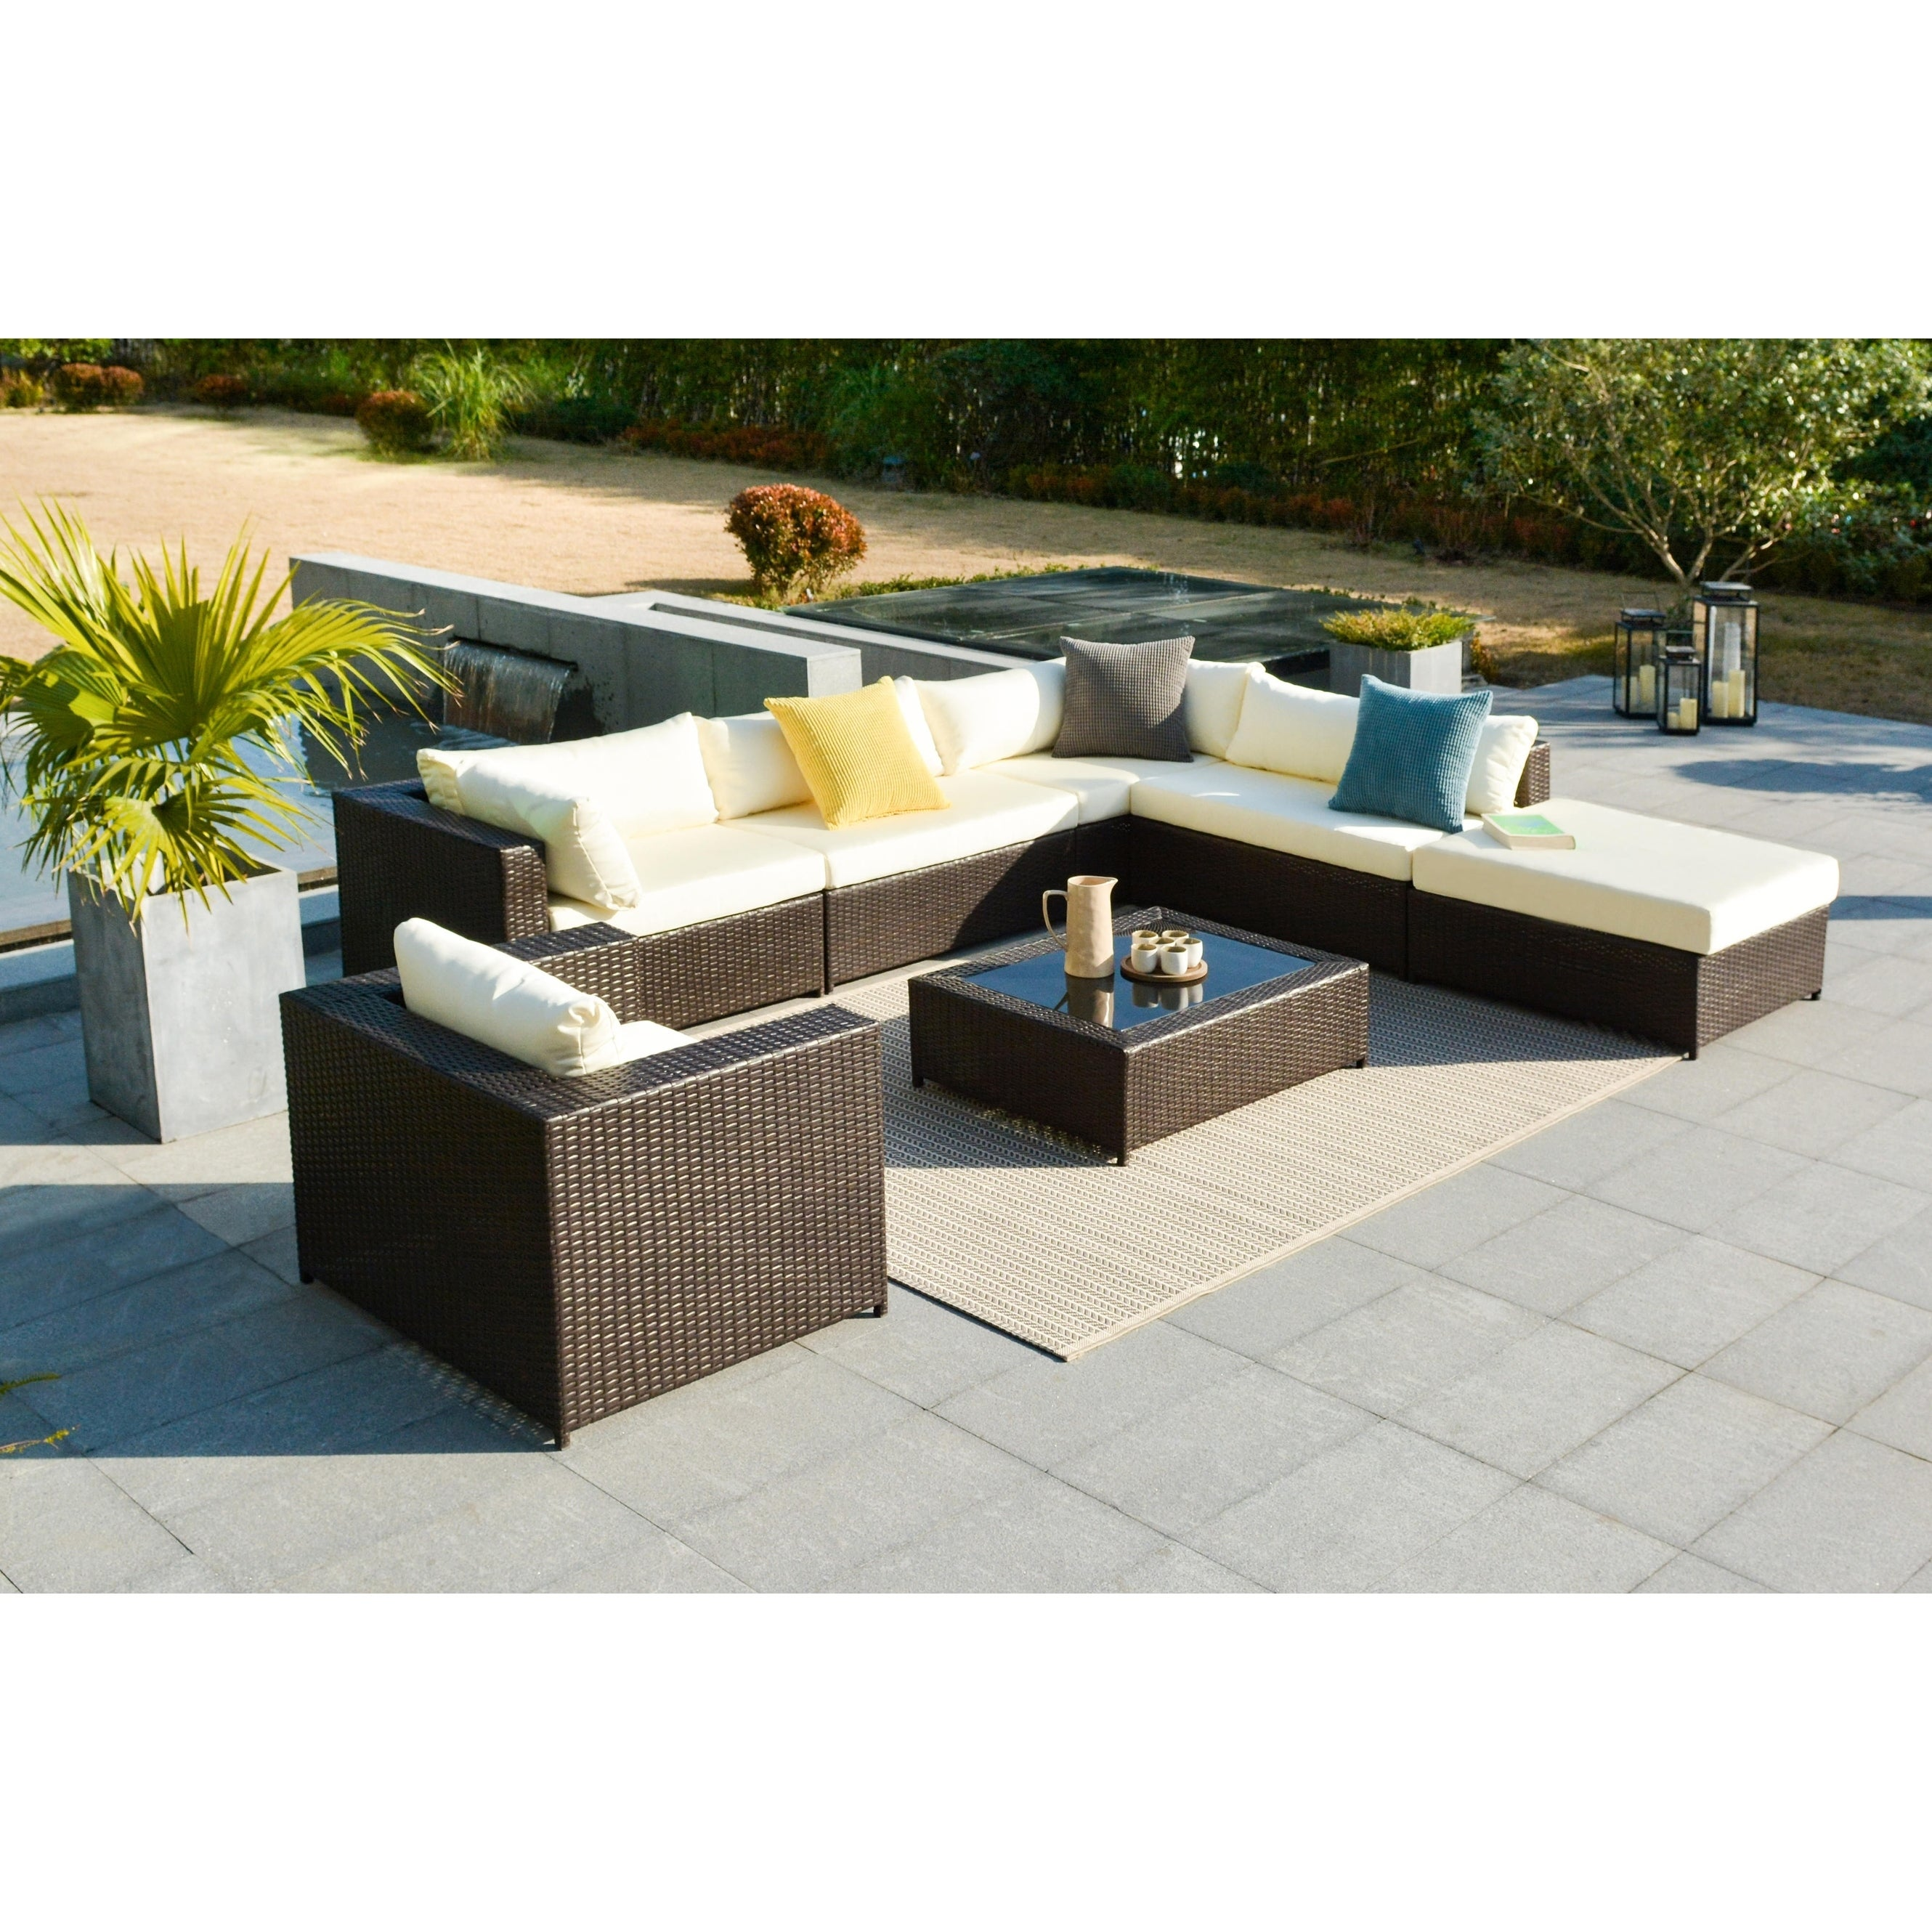 Havenside Home Caladesi 7 Piece Resin Wicker Outdoor Sectional Sofa Set